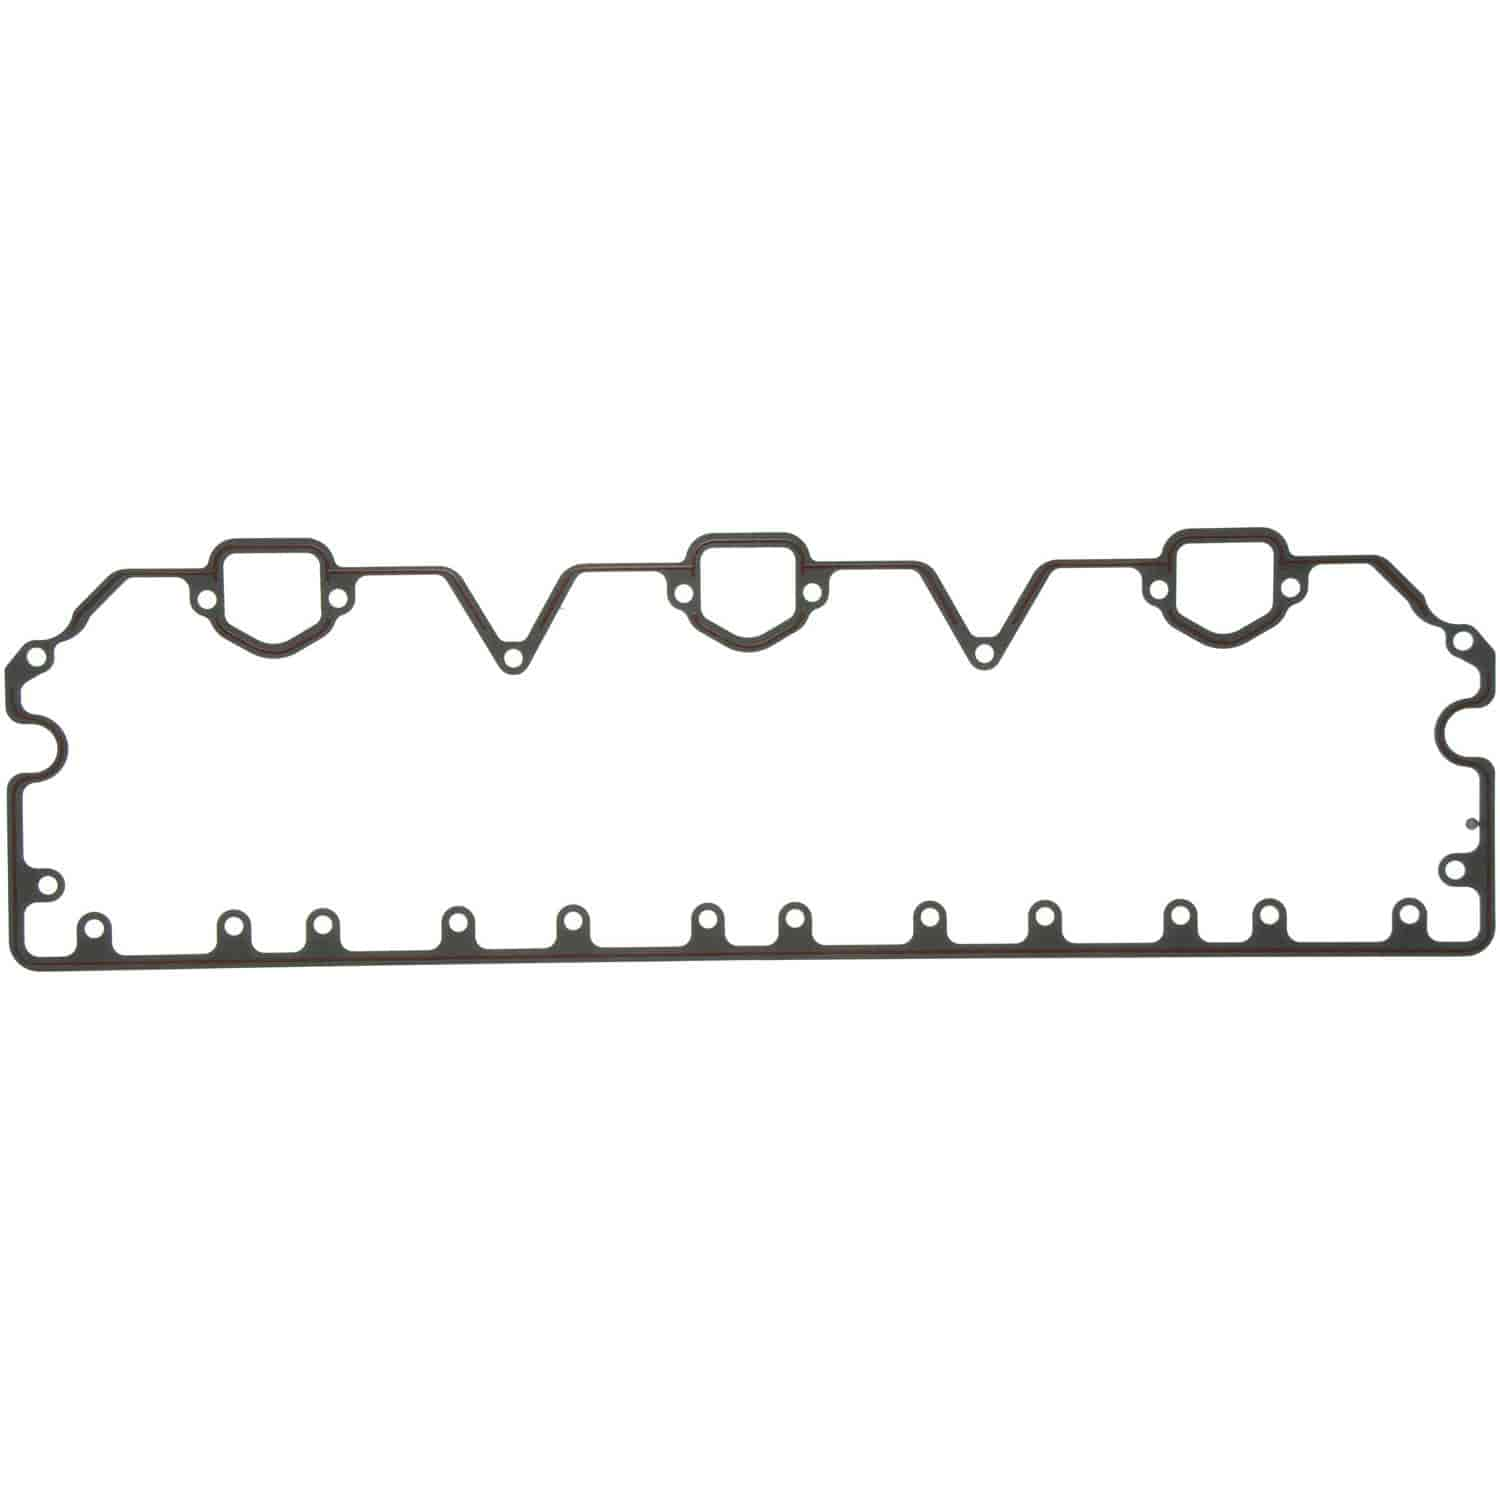 Clevite Mahle Vs Rocker Cover Gasket For Cummins Late Model L10 And M11 Engines